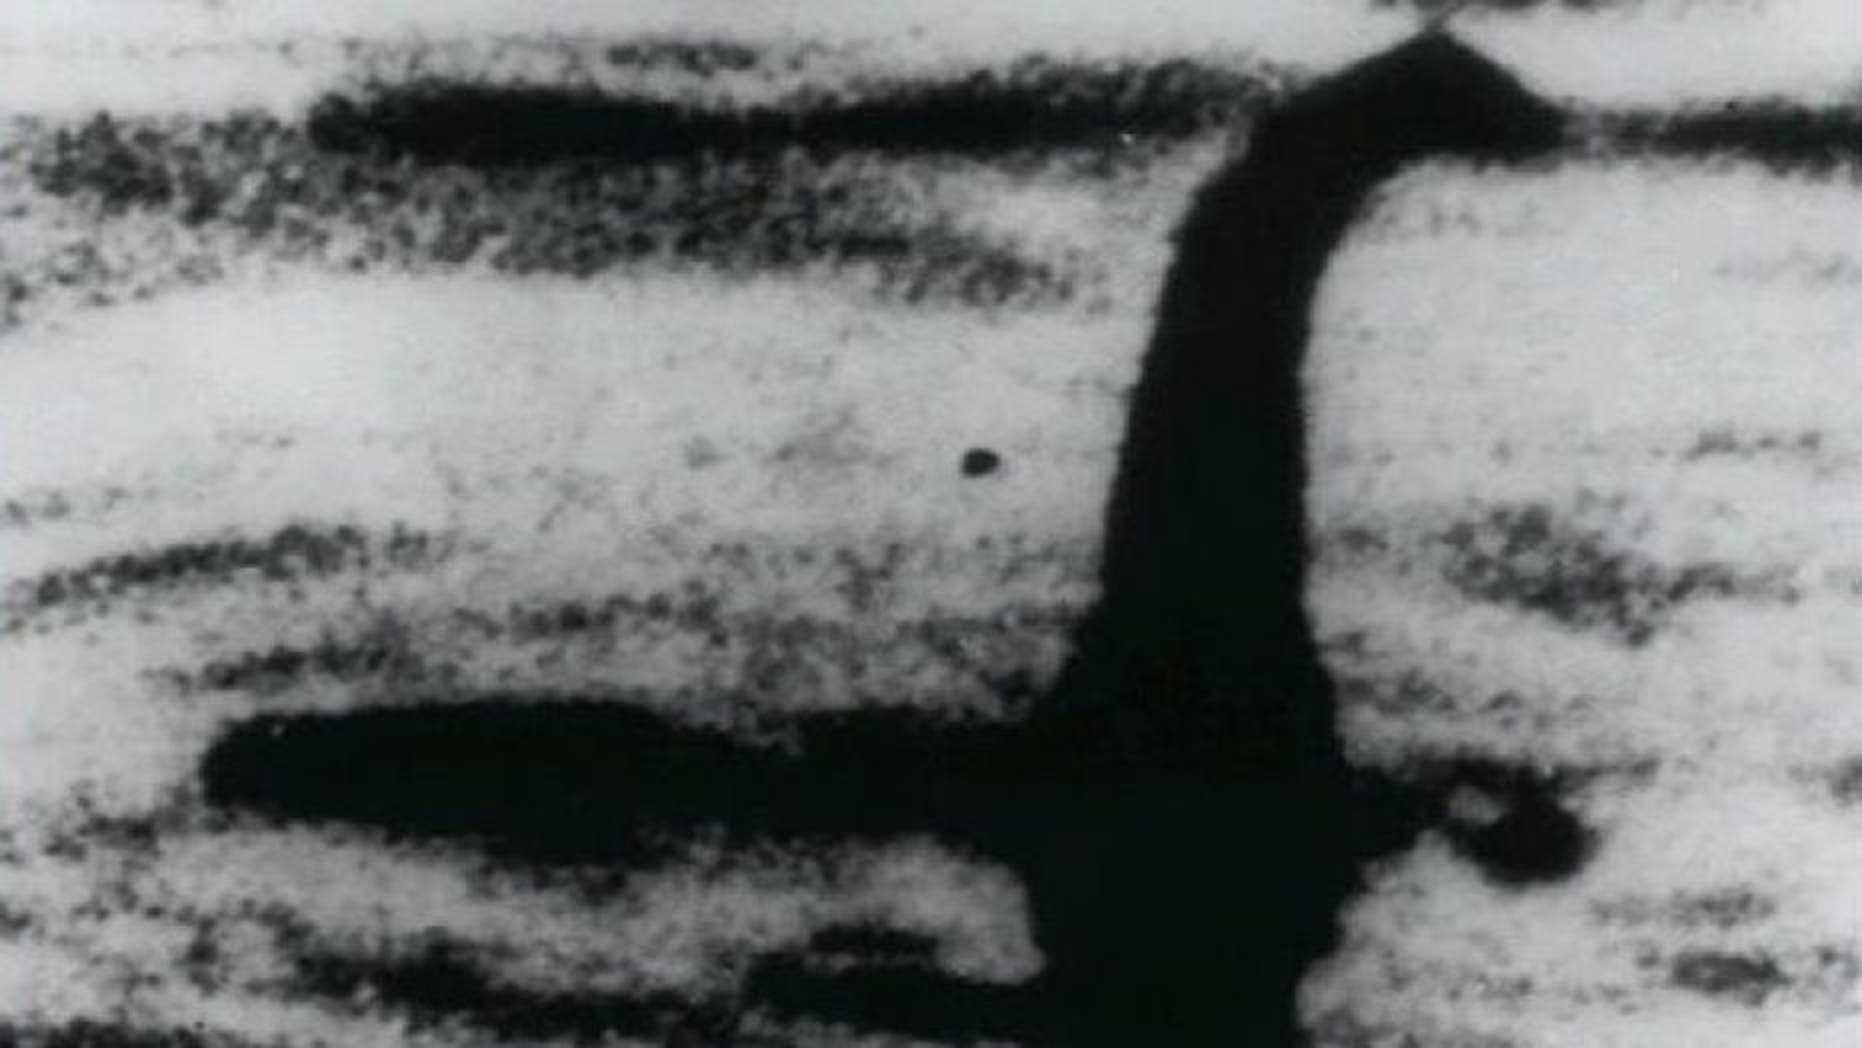 """FILE -This is an undated file photo of a shadowy shape that some people say is a photo of the Loch Ness monster in Scotland. For hundreds of years, visitors to Scotland's Loch Ness have described seeing a monster that some believe lives in the depths. Now the legend of """"Nessie"""" may have no place to hide. Researchers will travel there next month to take samples of the murky waters and use DNA tests to determine what species live there. (AP Photo, File)"""